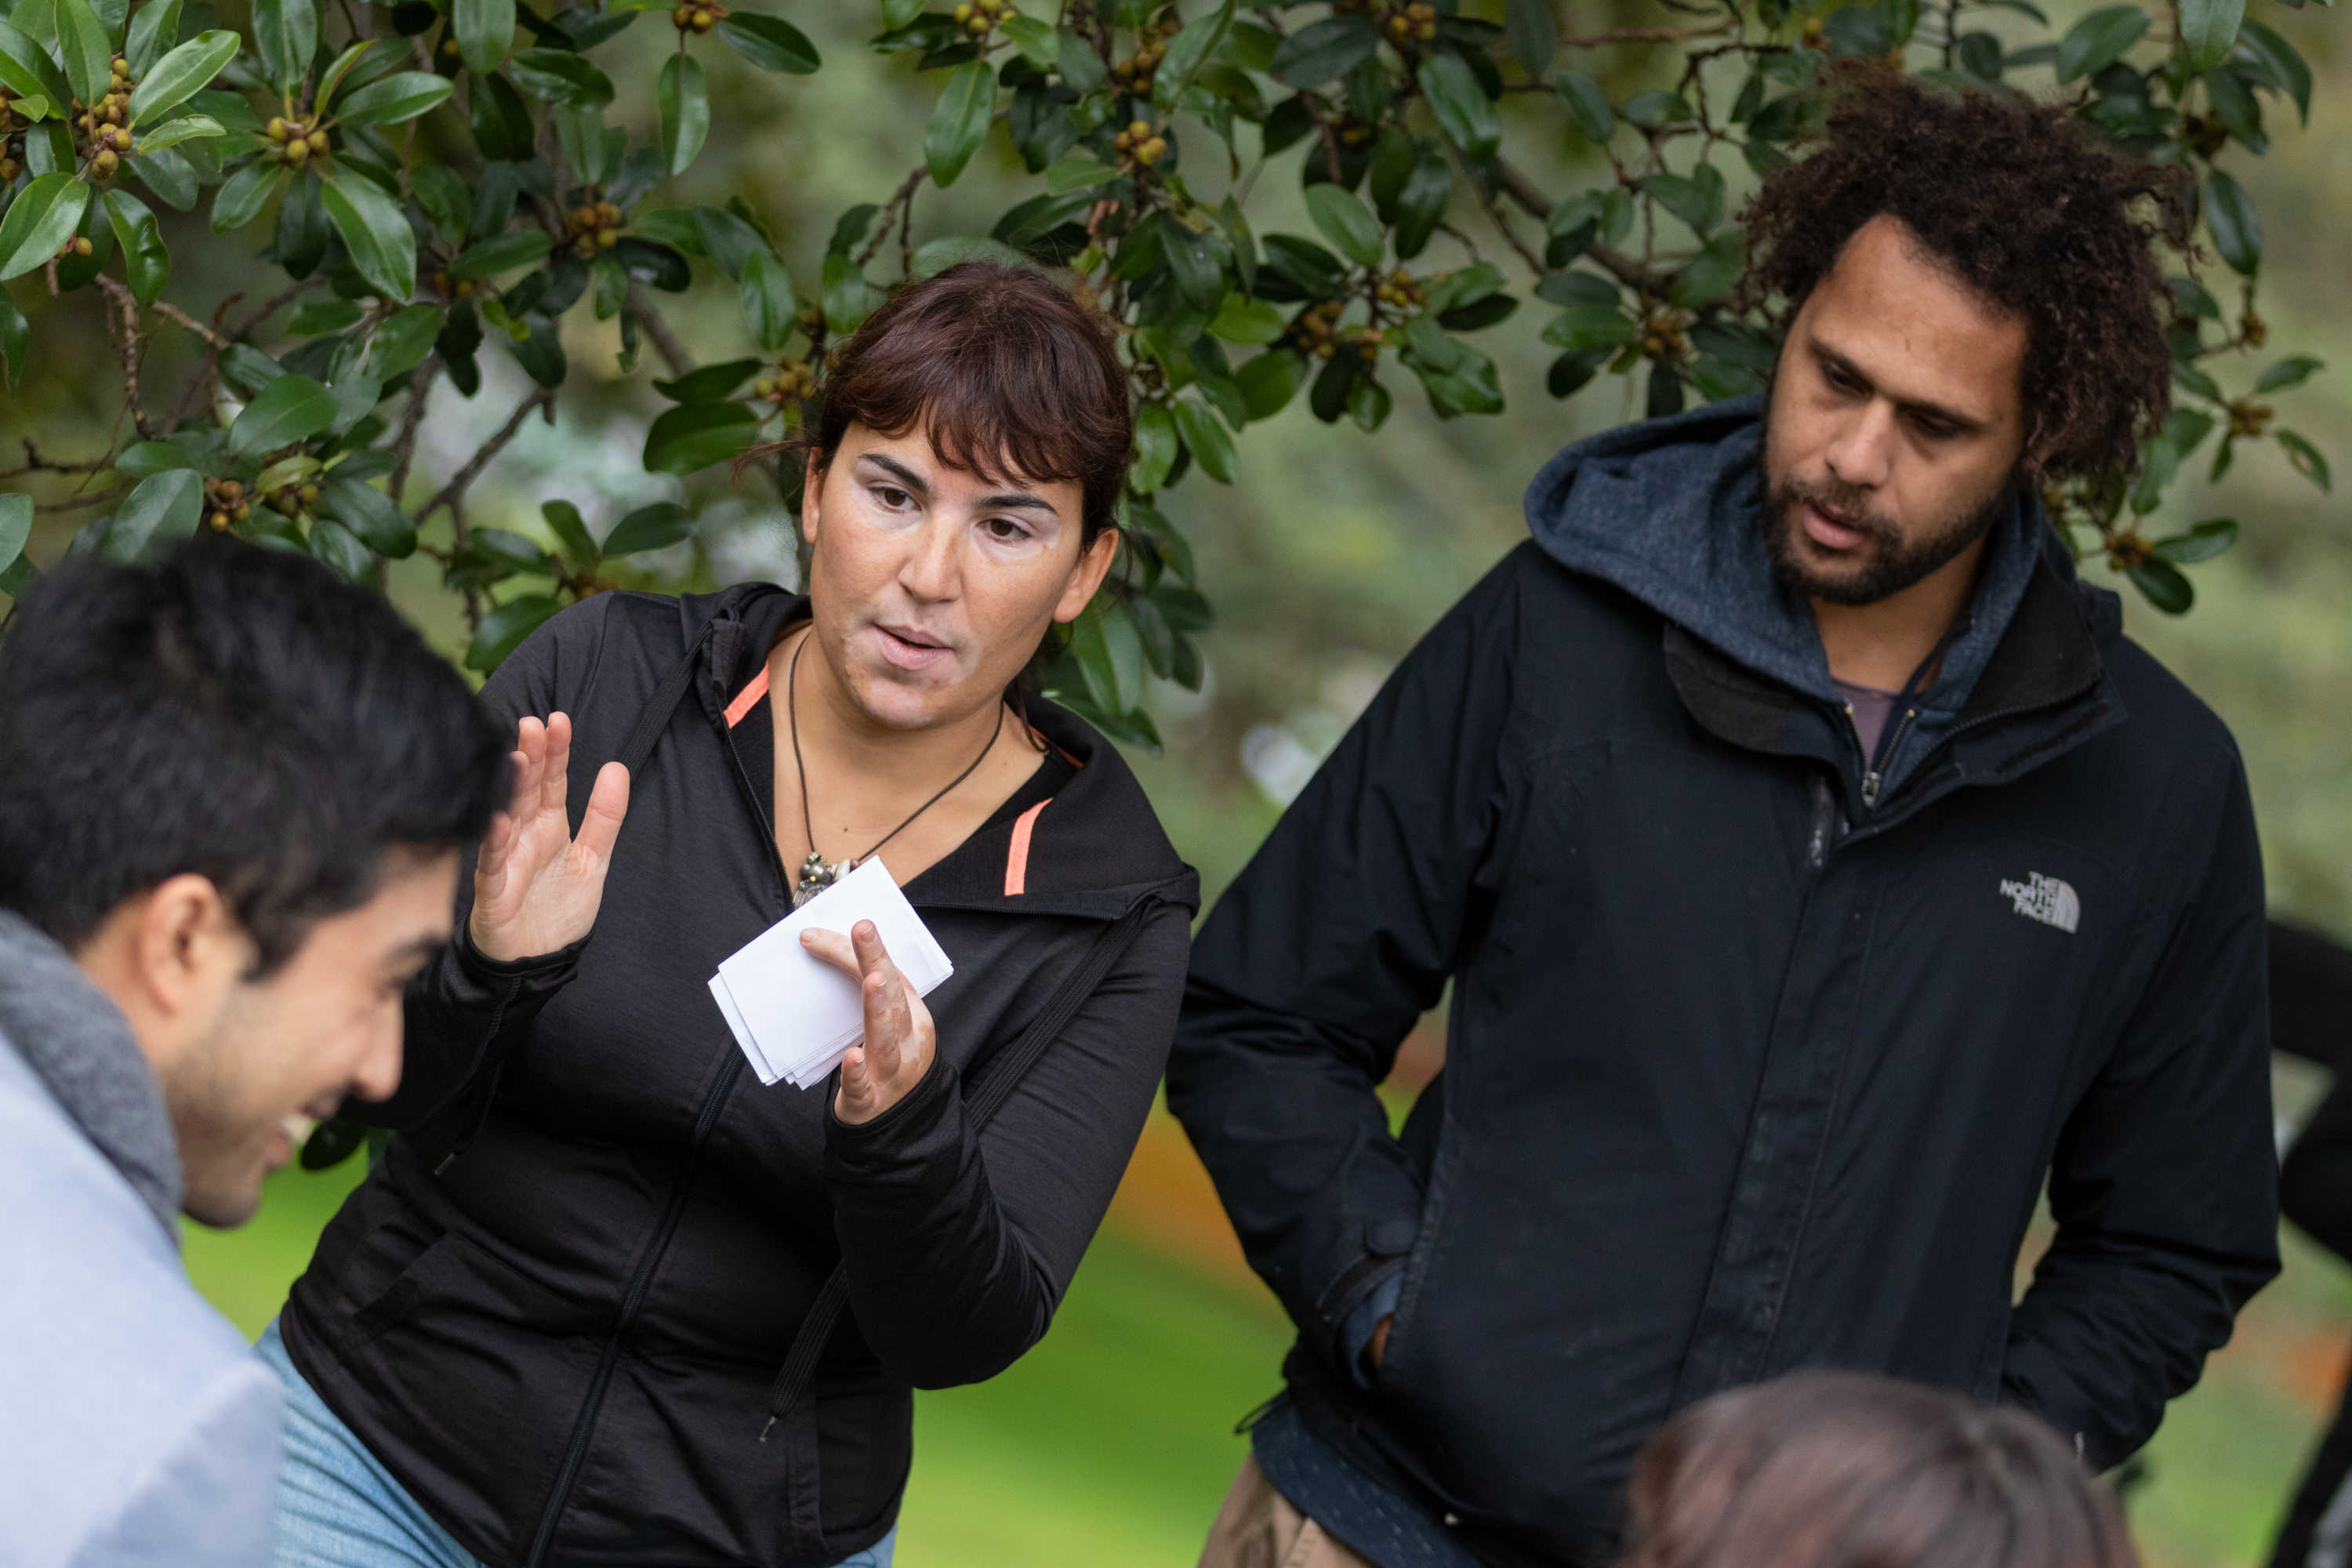 Alessia Francischiello on set with Kupa Warner discussing with actors